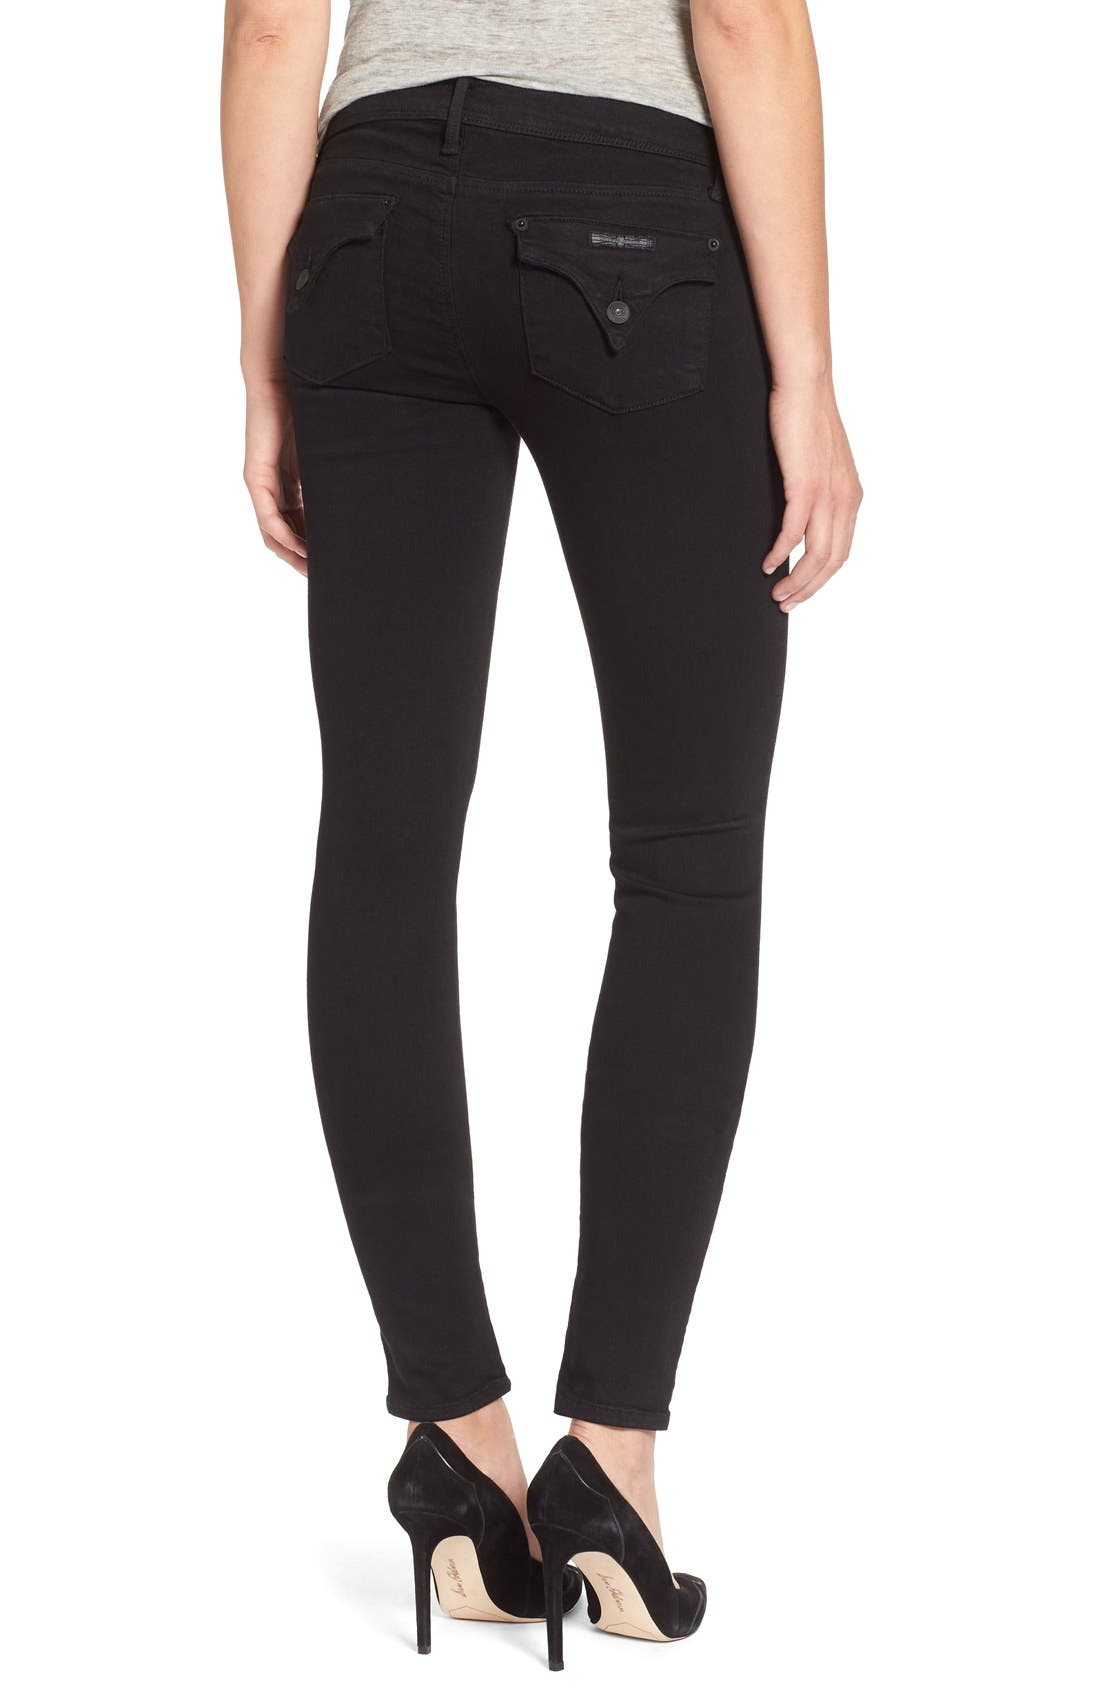 'Collin' Supermodel Skinny Jeans,                             Alternate thumbnail 5, color,                             001